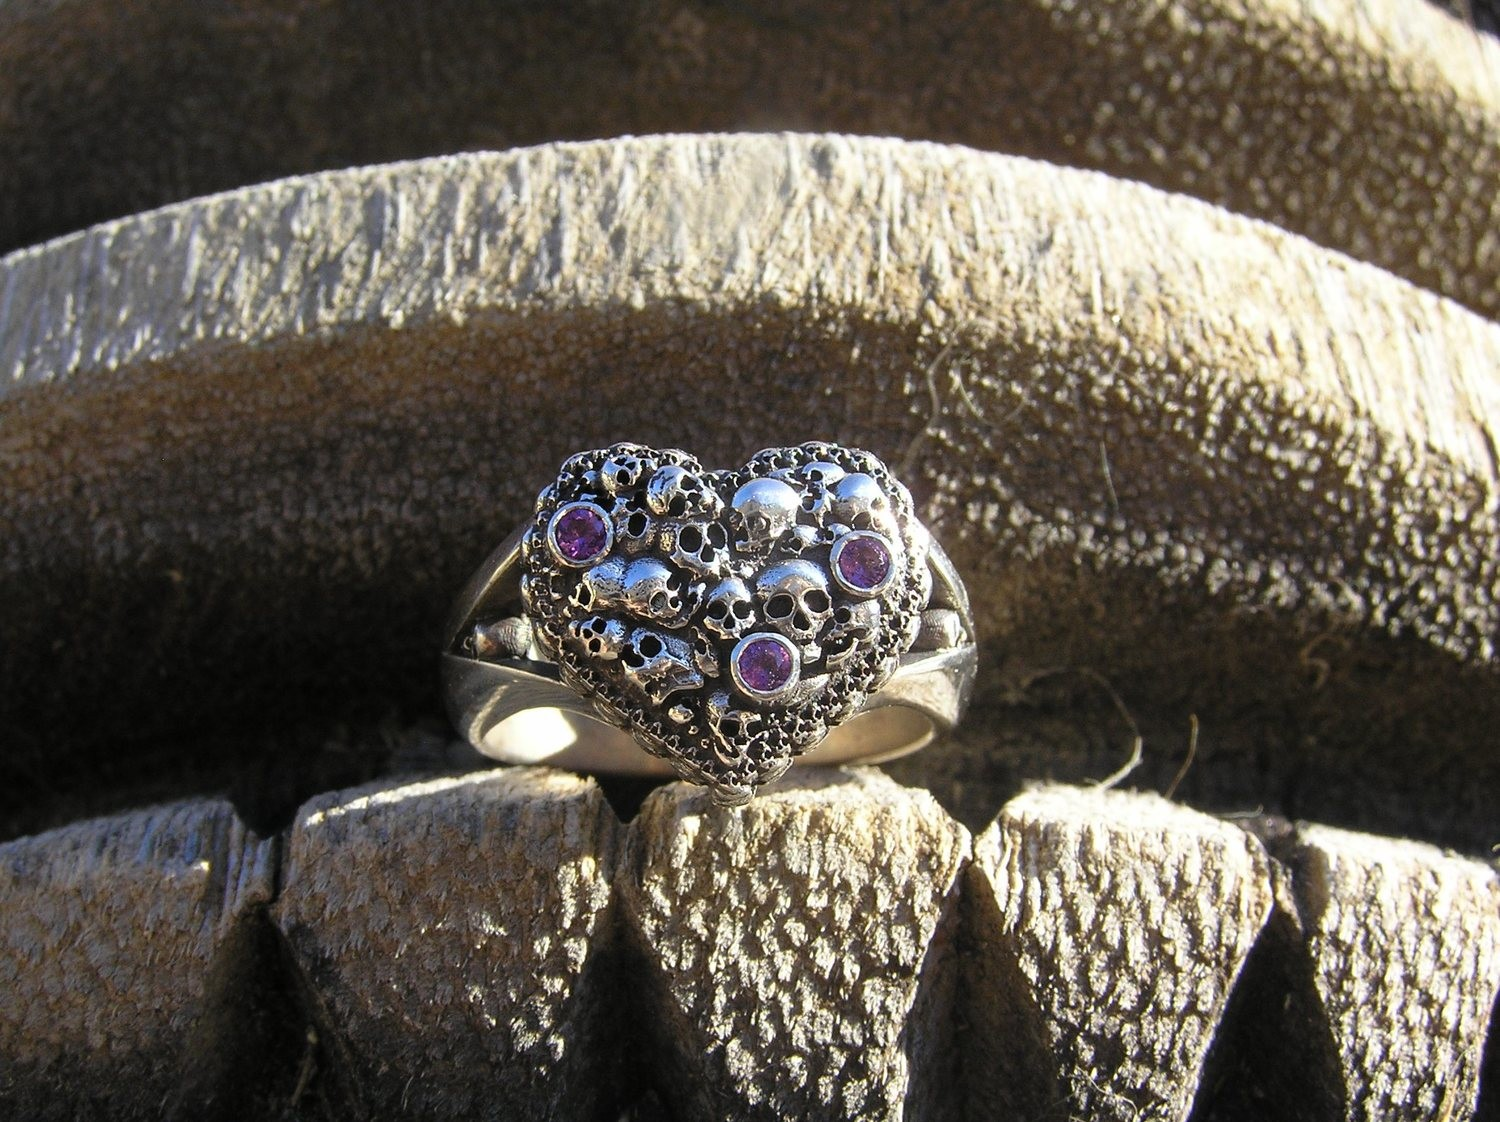 Spartan heart rings with Amethyst